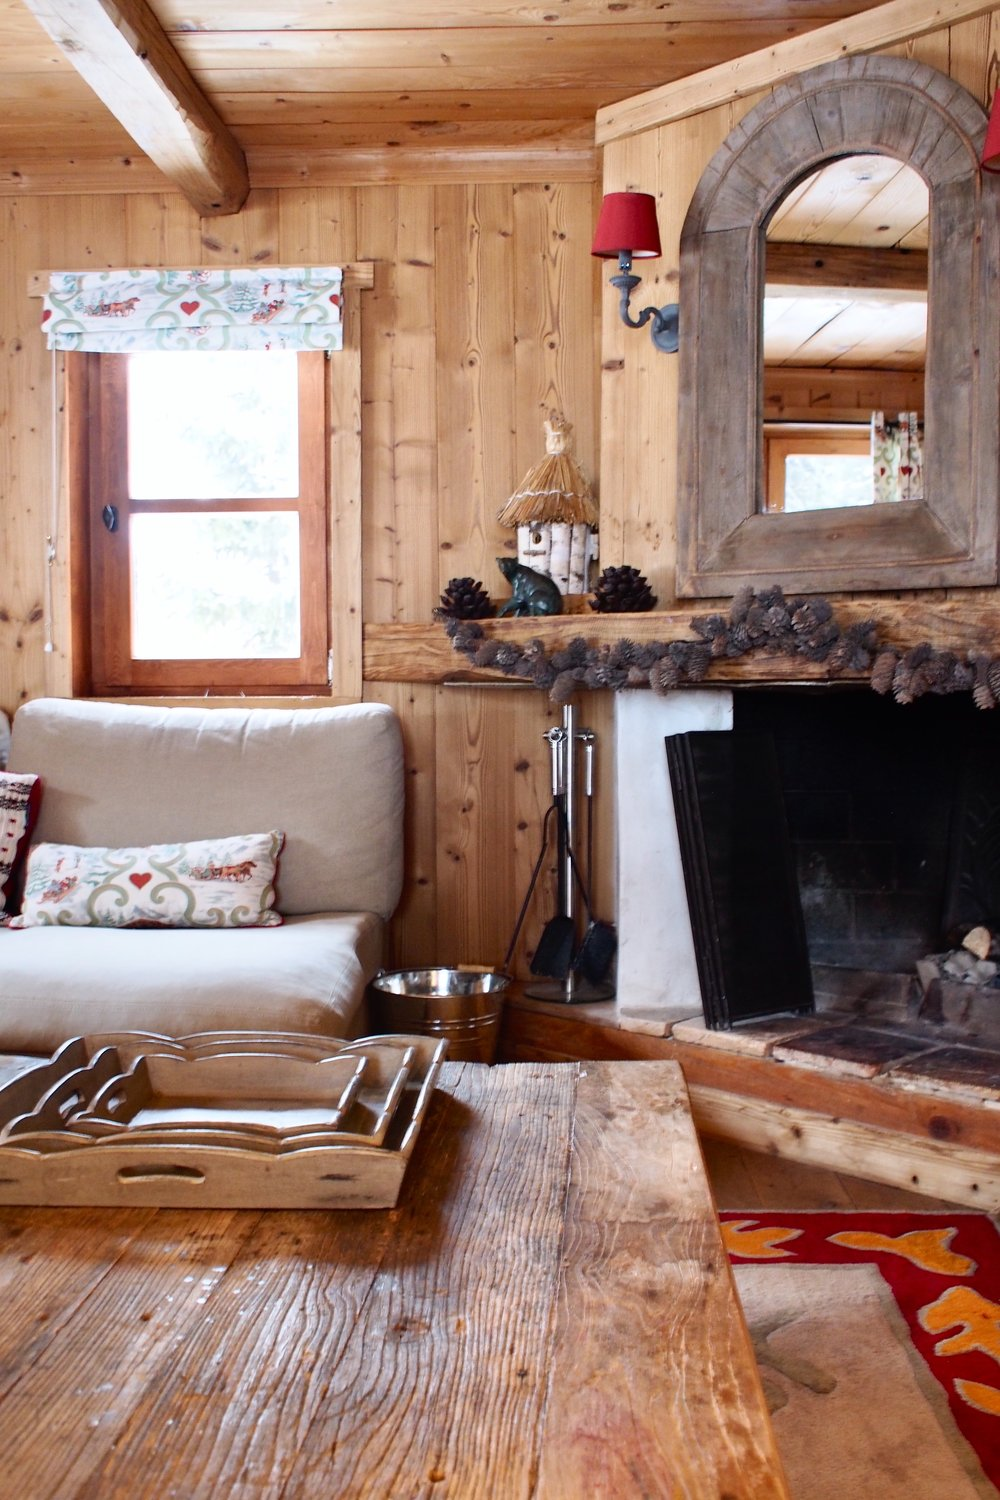 CHALET LES OURSONS - LE TANIA - The Grown Up Edit.jpg